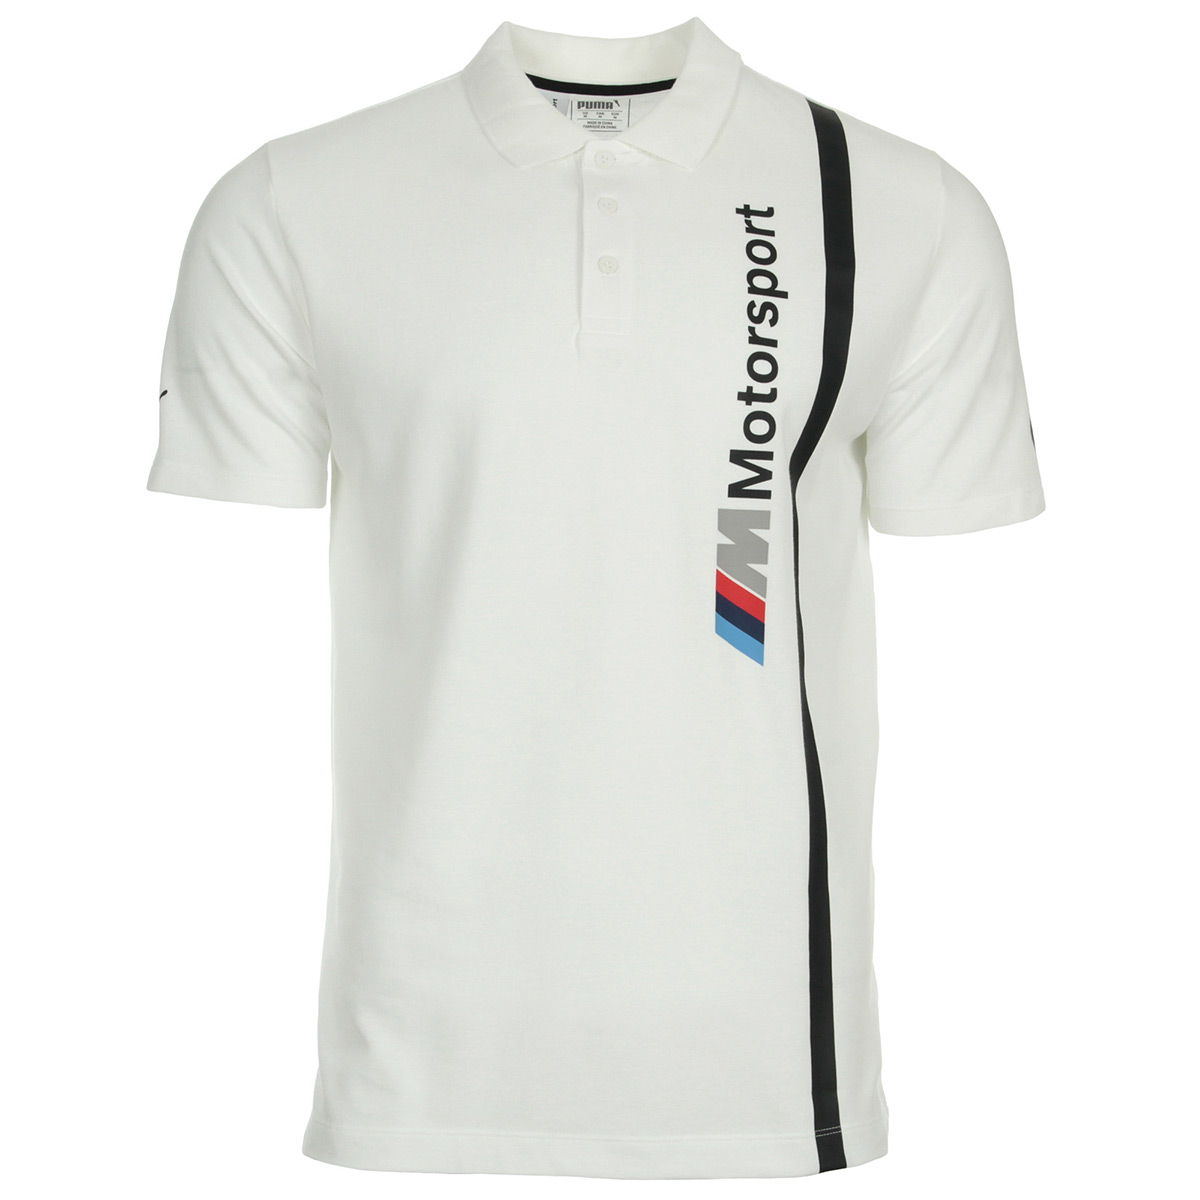 Vêtement Polos Puma homme BMW MMS Polo taille Blanc Coton  dbfc501ebfc